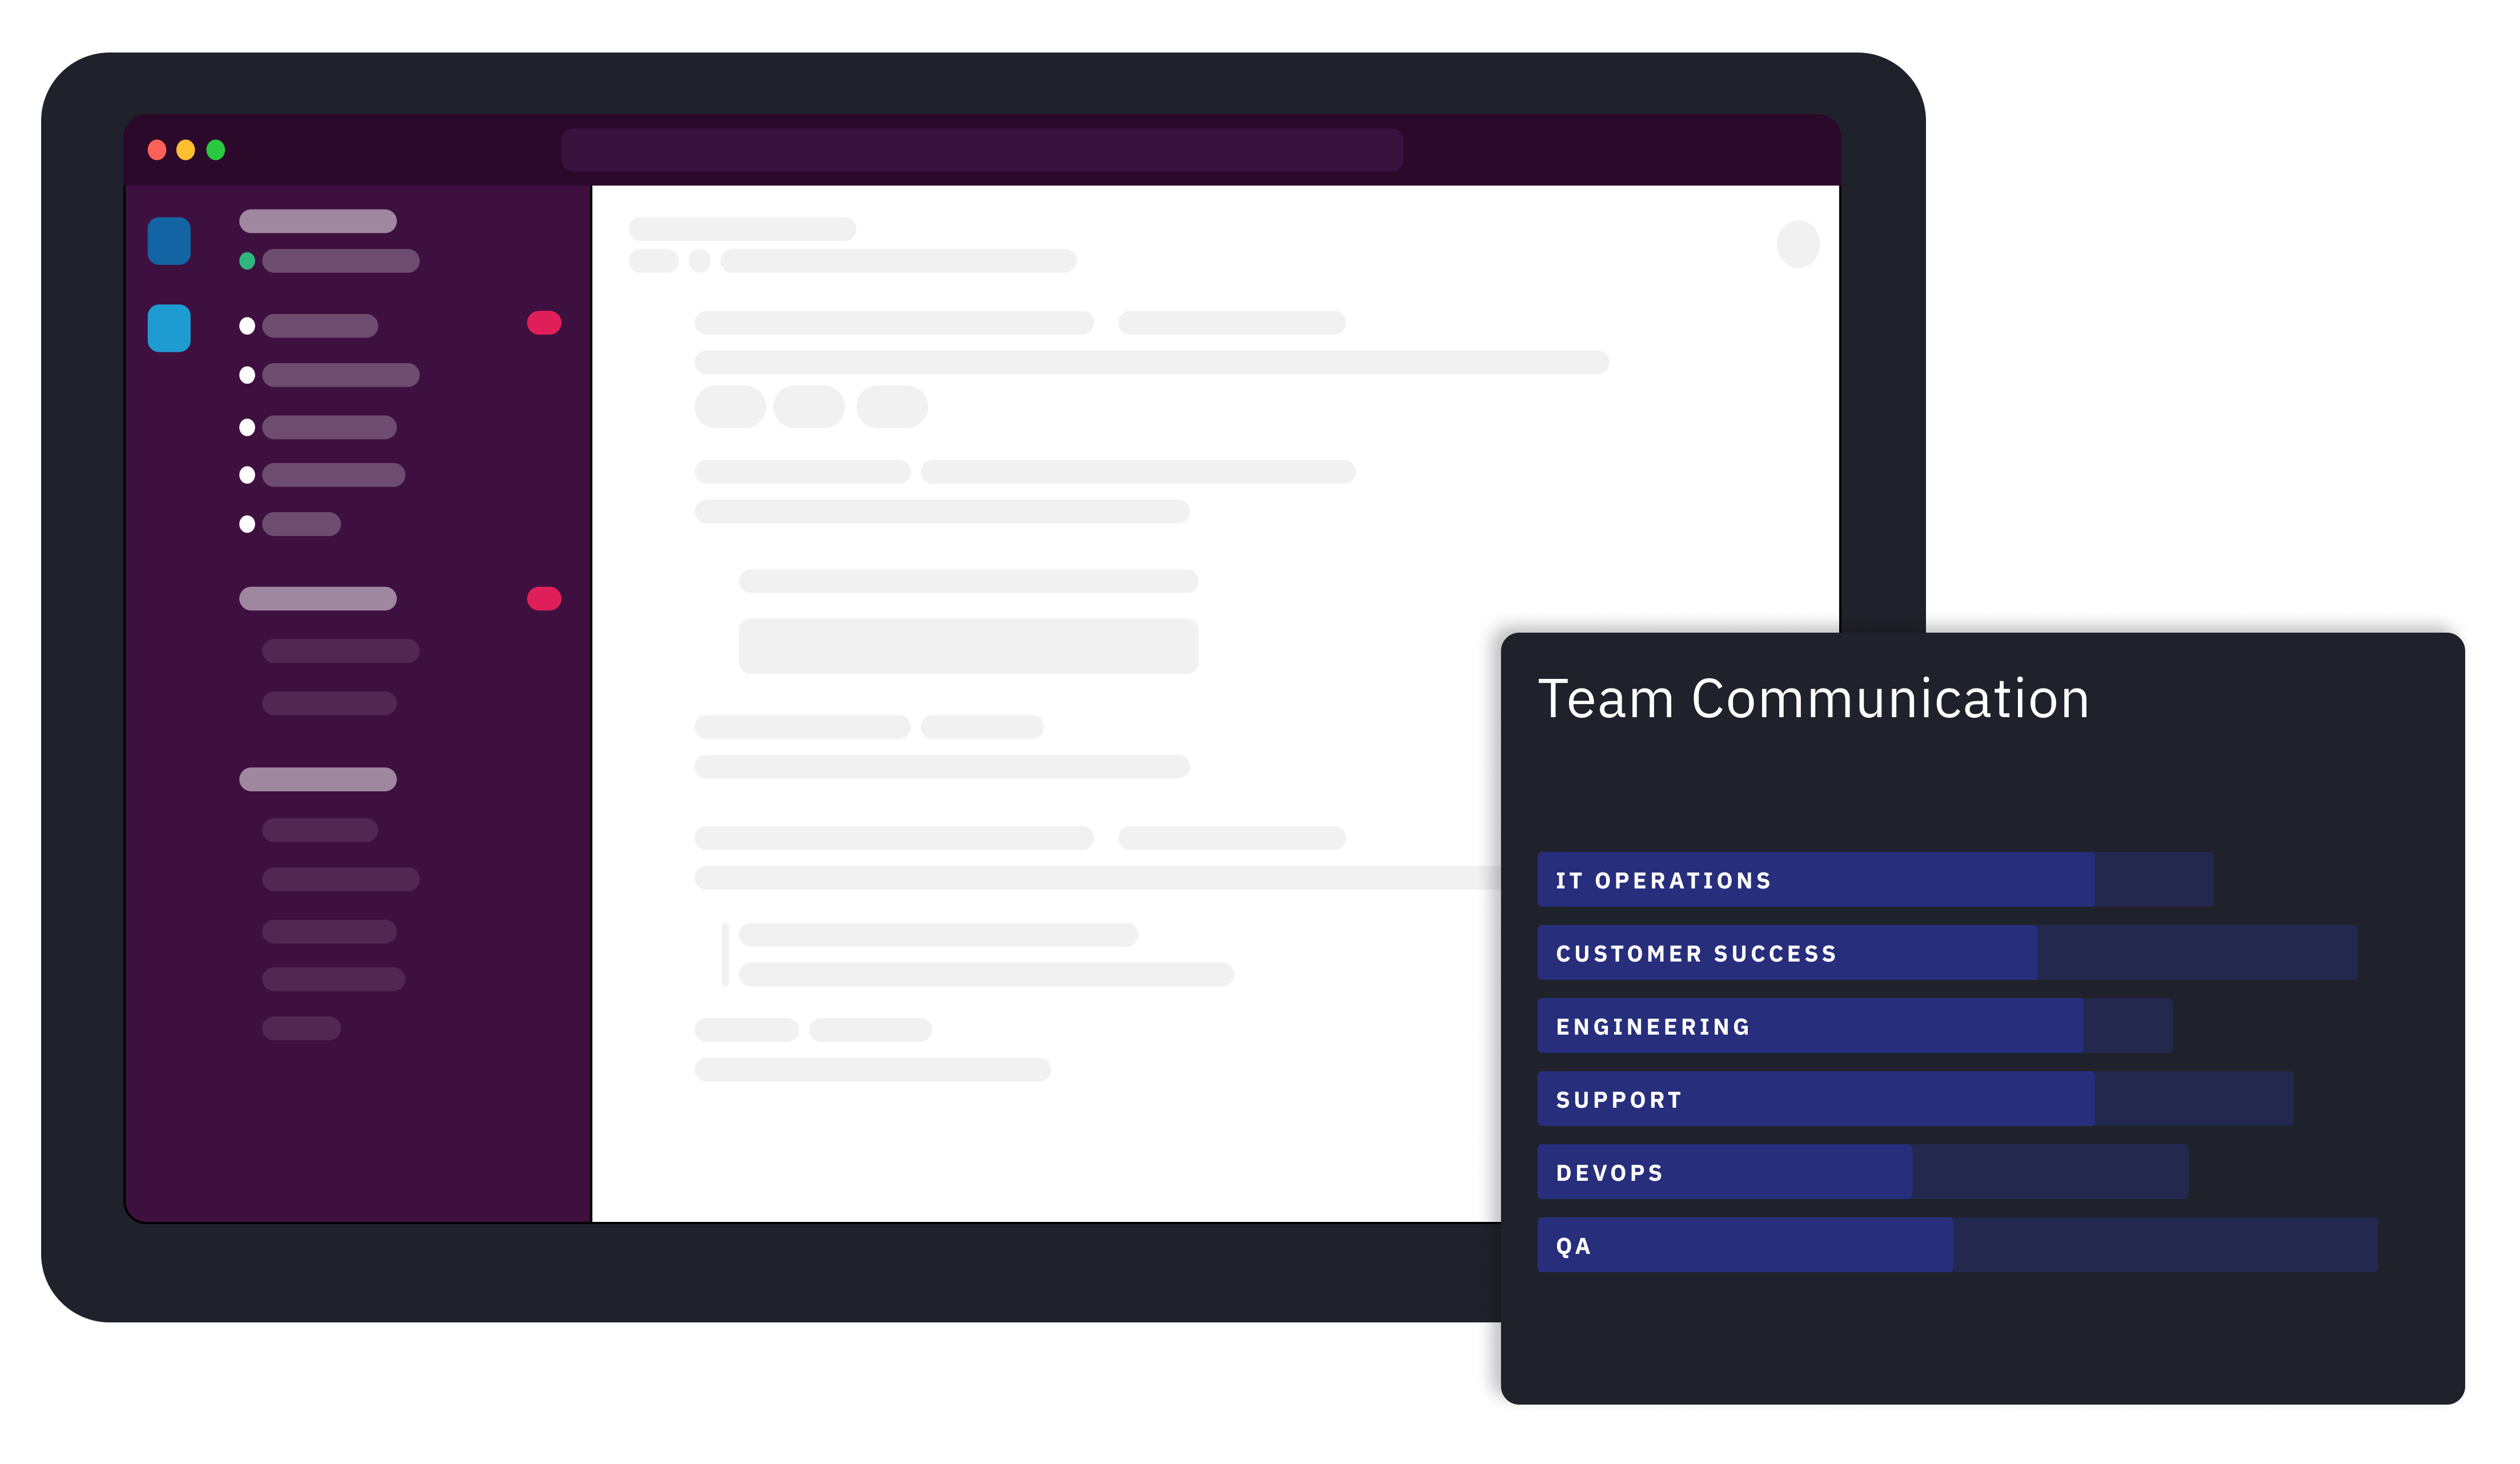 Faster resolution times among your teams